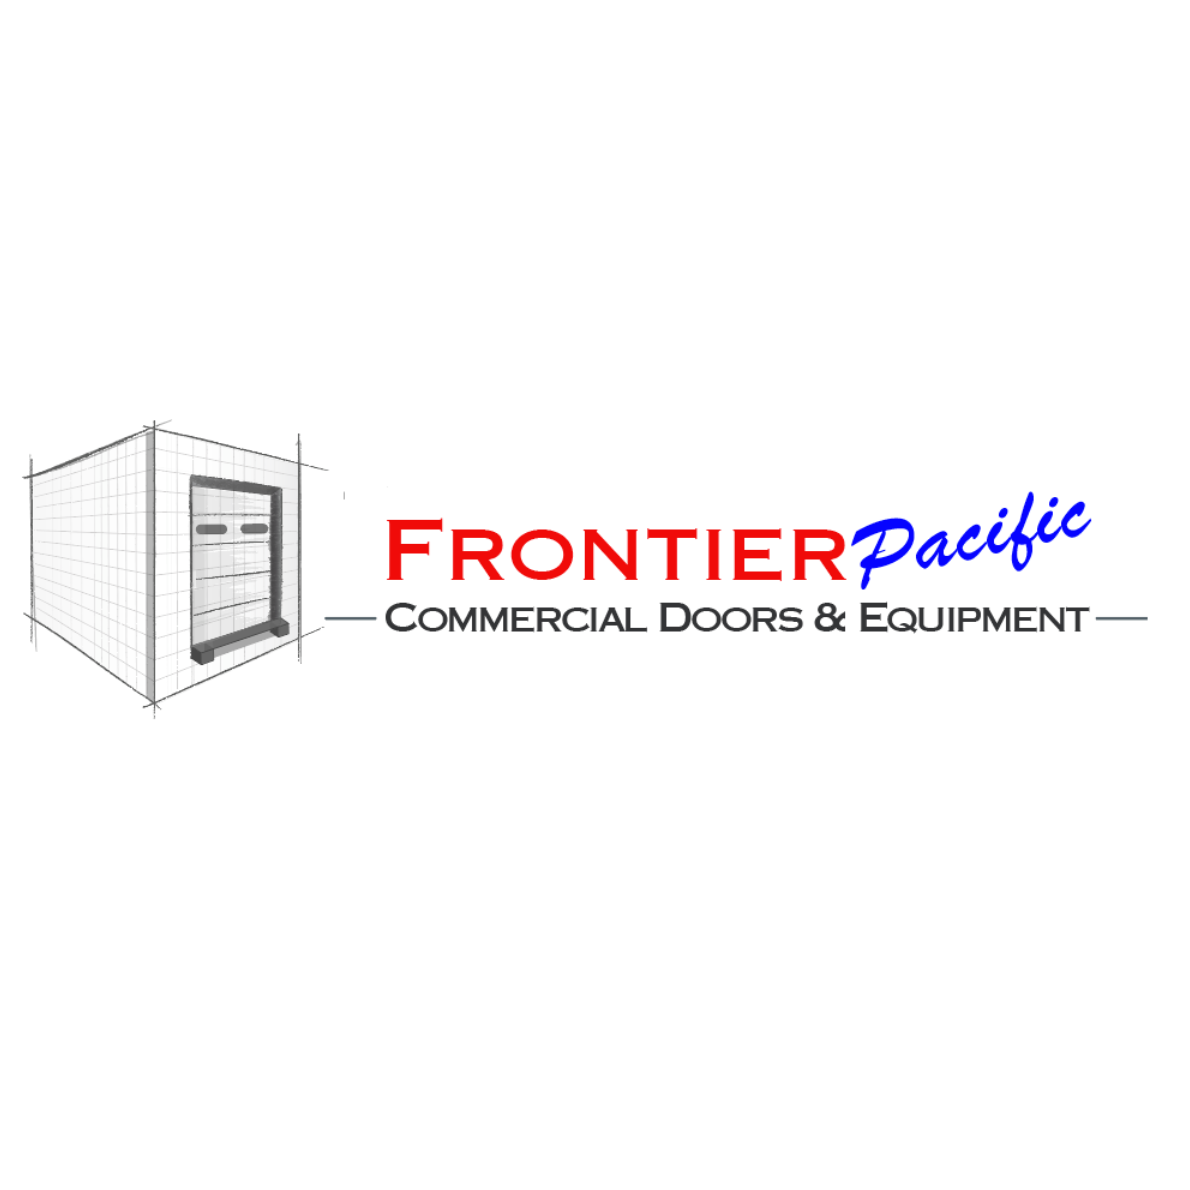 Frontier Pacific Commercial Doors & Equipment